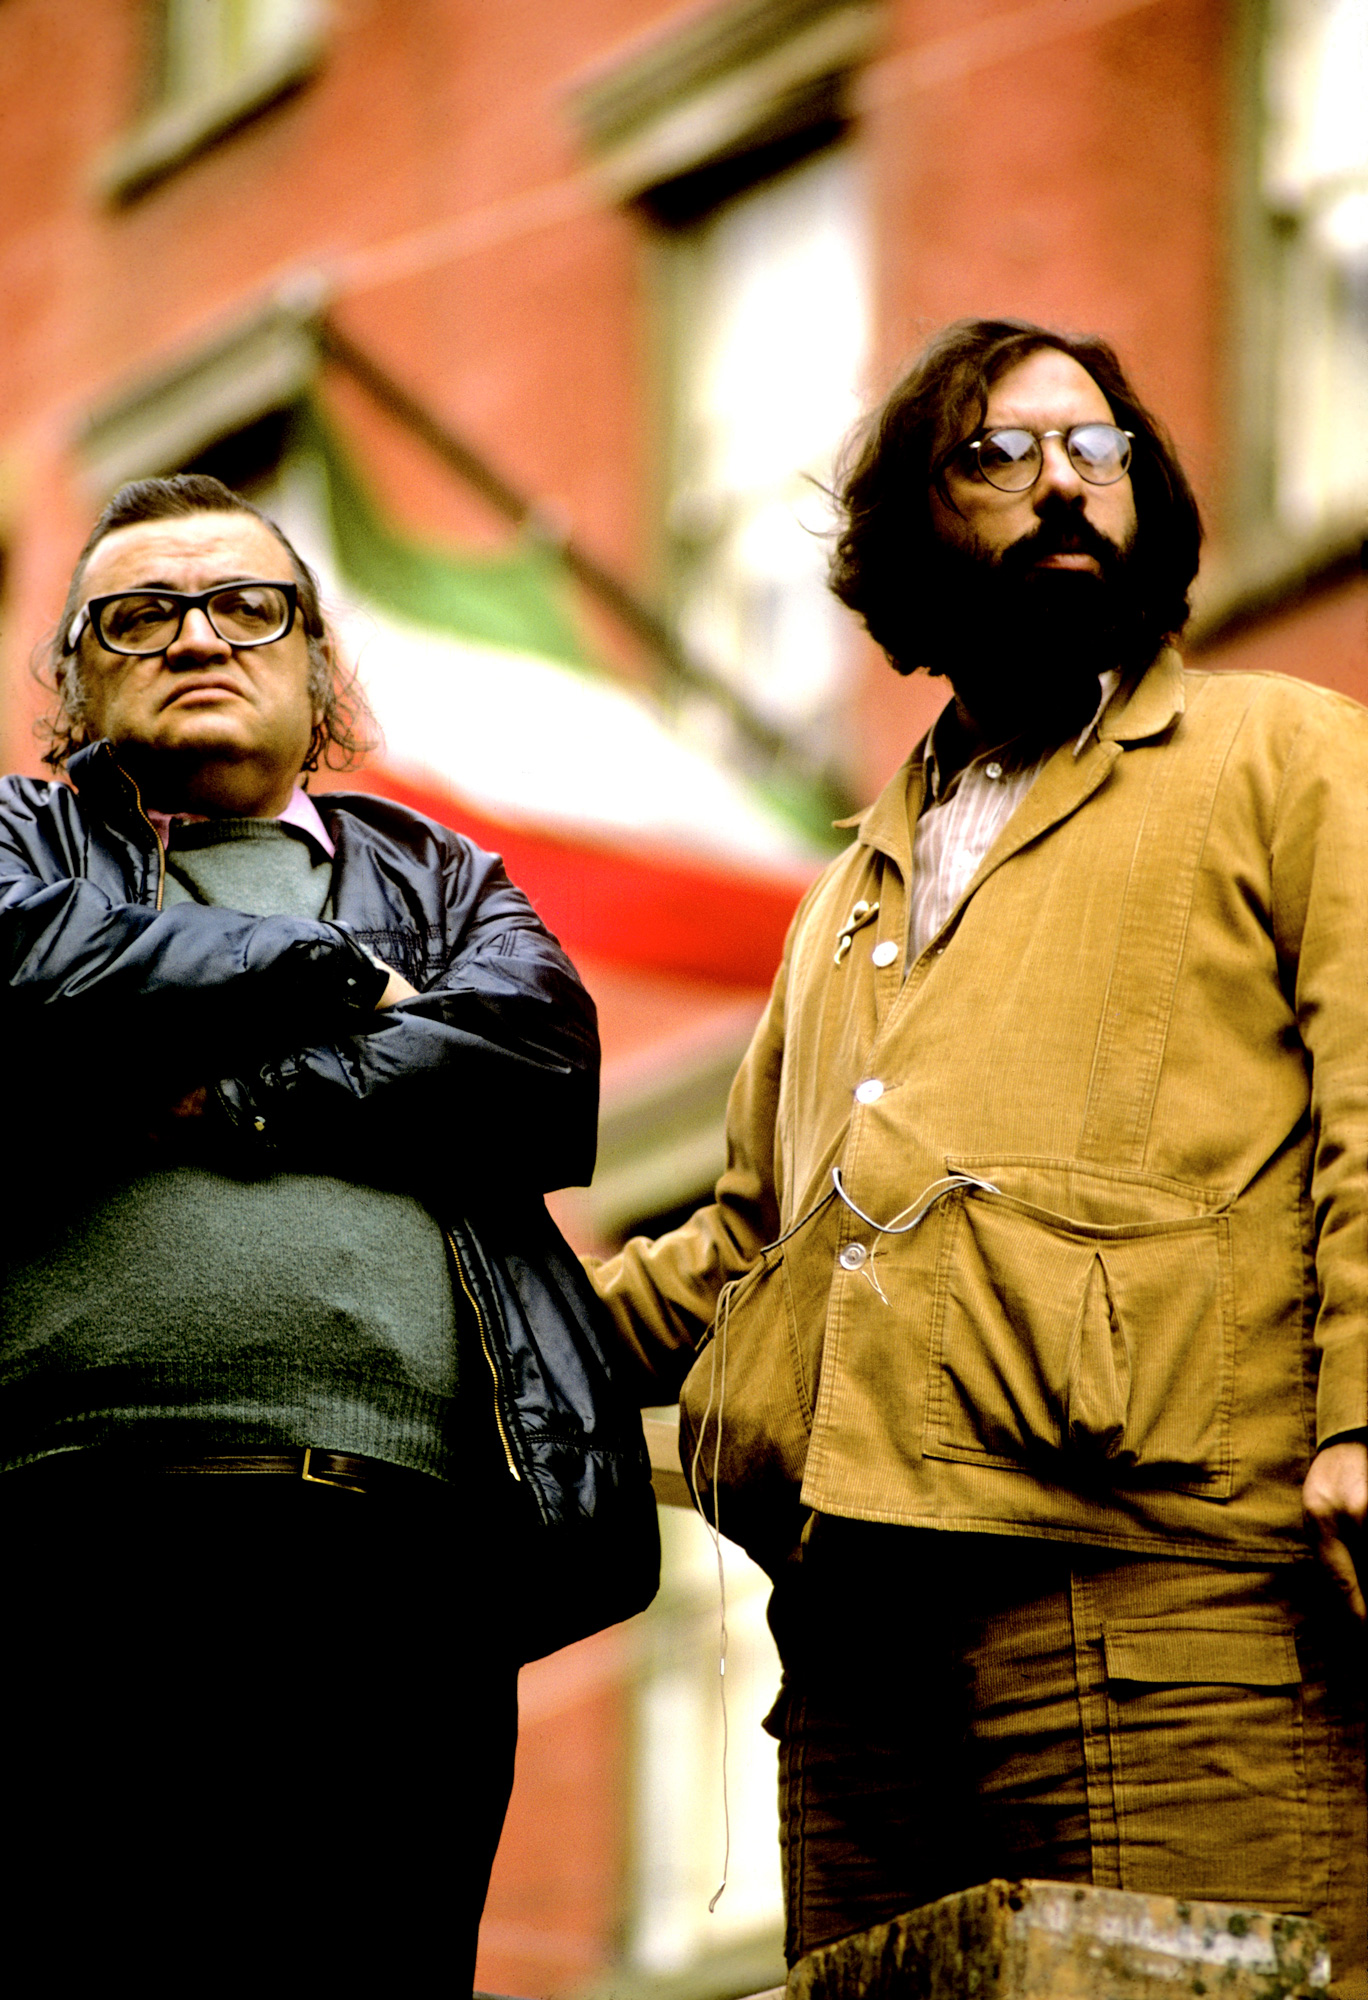 Mario Puzo and Francis Ford Coppola, Photo: Steve Schapiro/Corbis